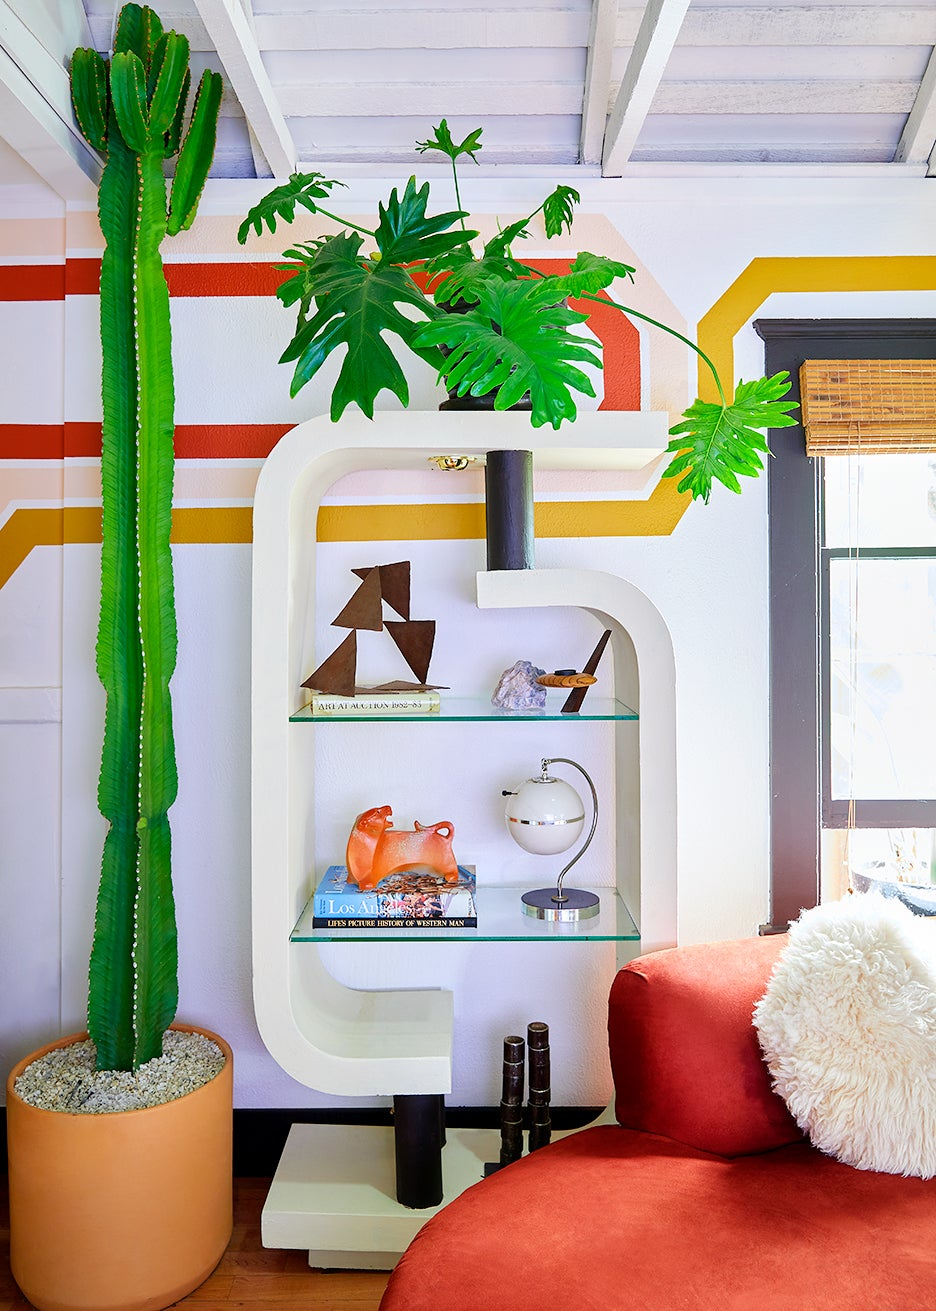 70s bookcase and cactus